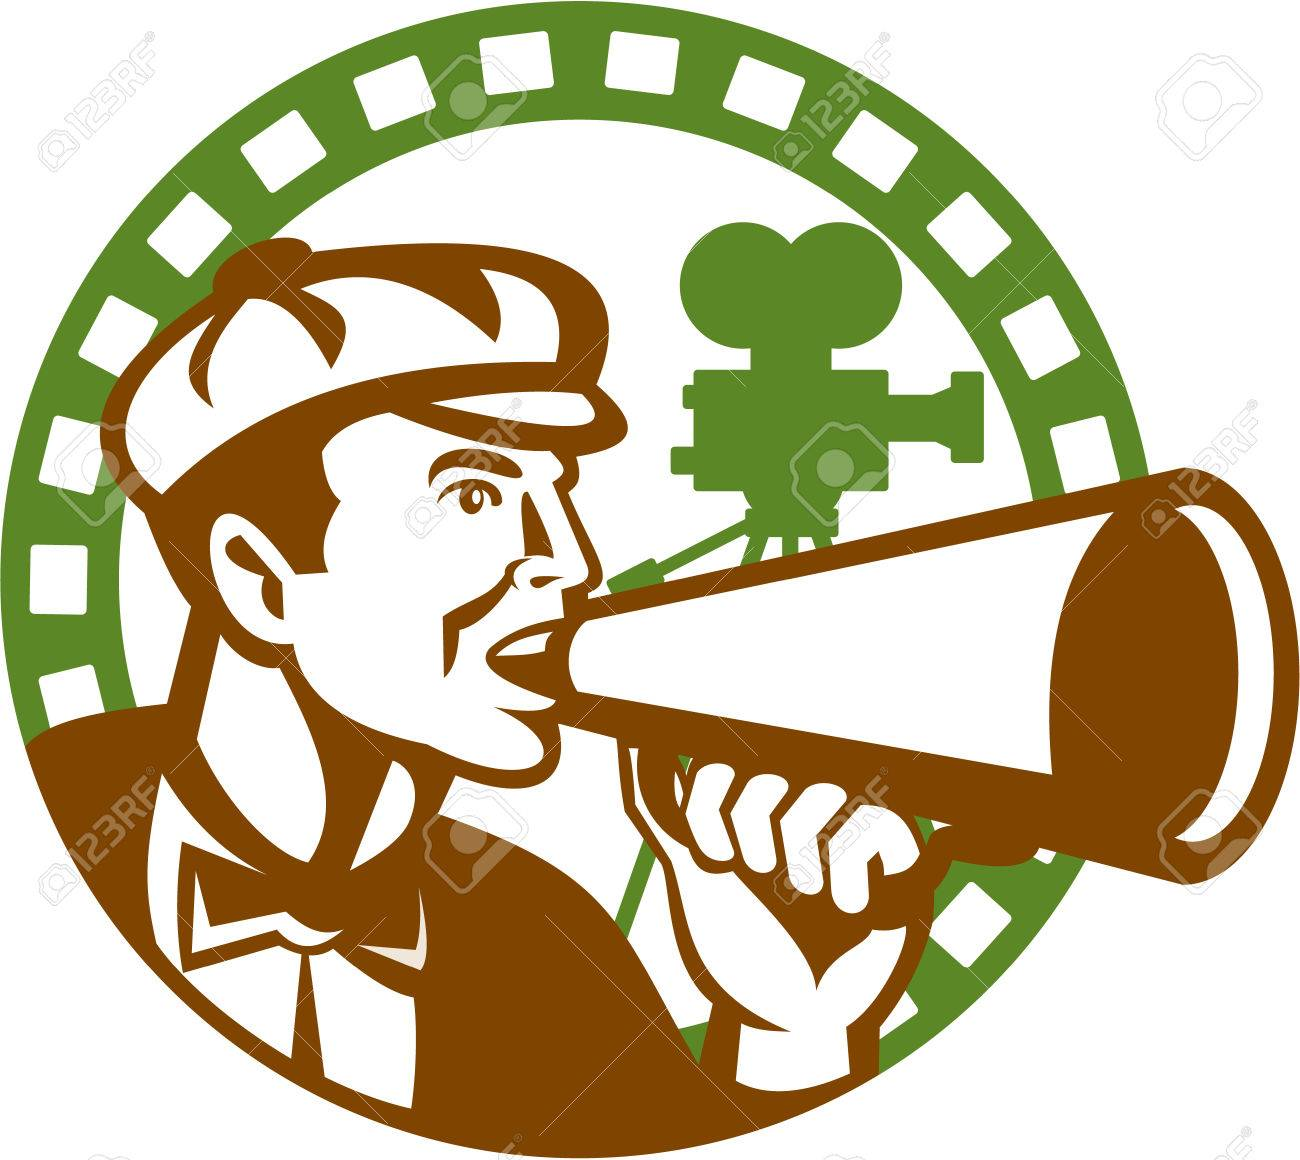 Illustration of a movie director cameraman shouting using bullhorn with vintage camera set inside circle done in retro style. Stock Vector - 26131590